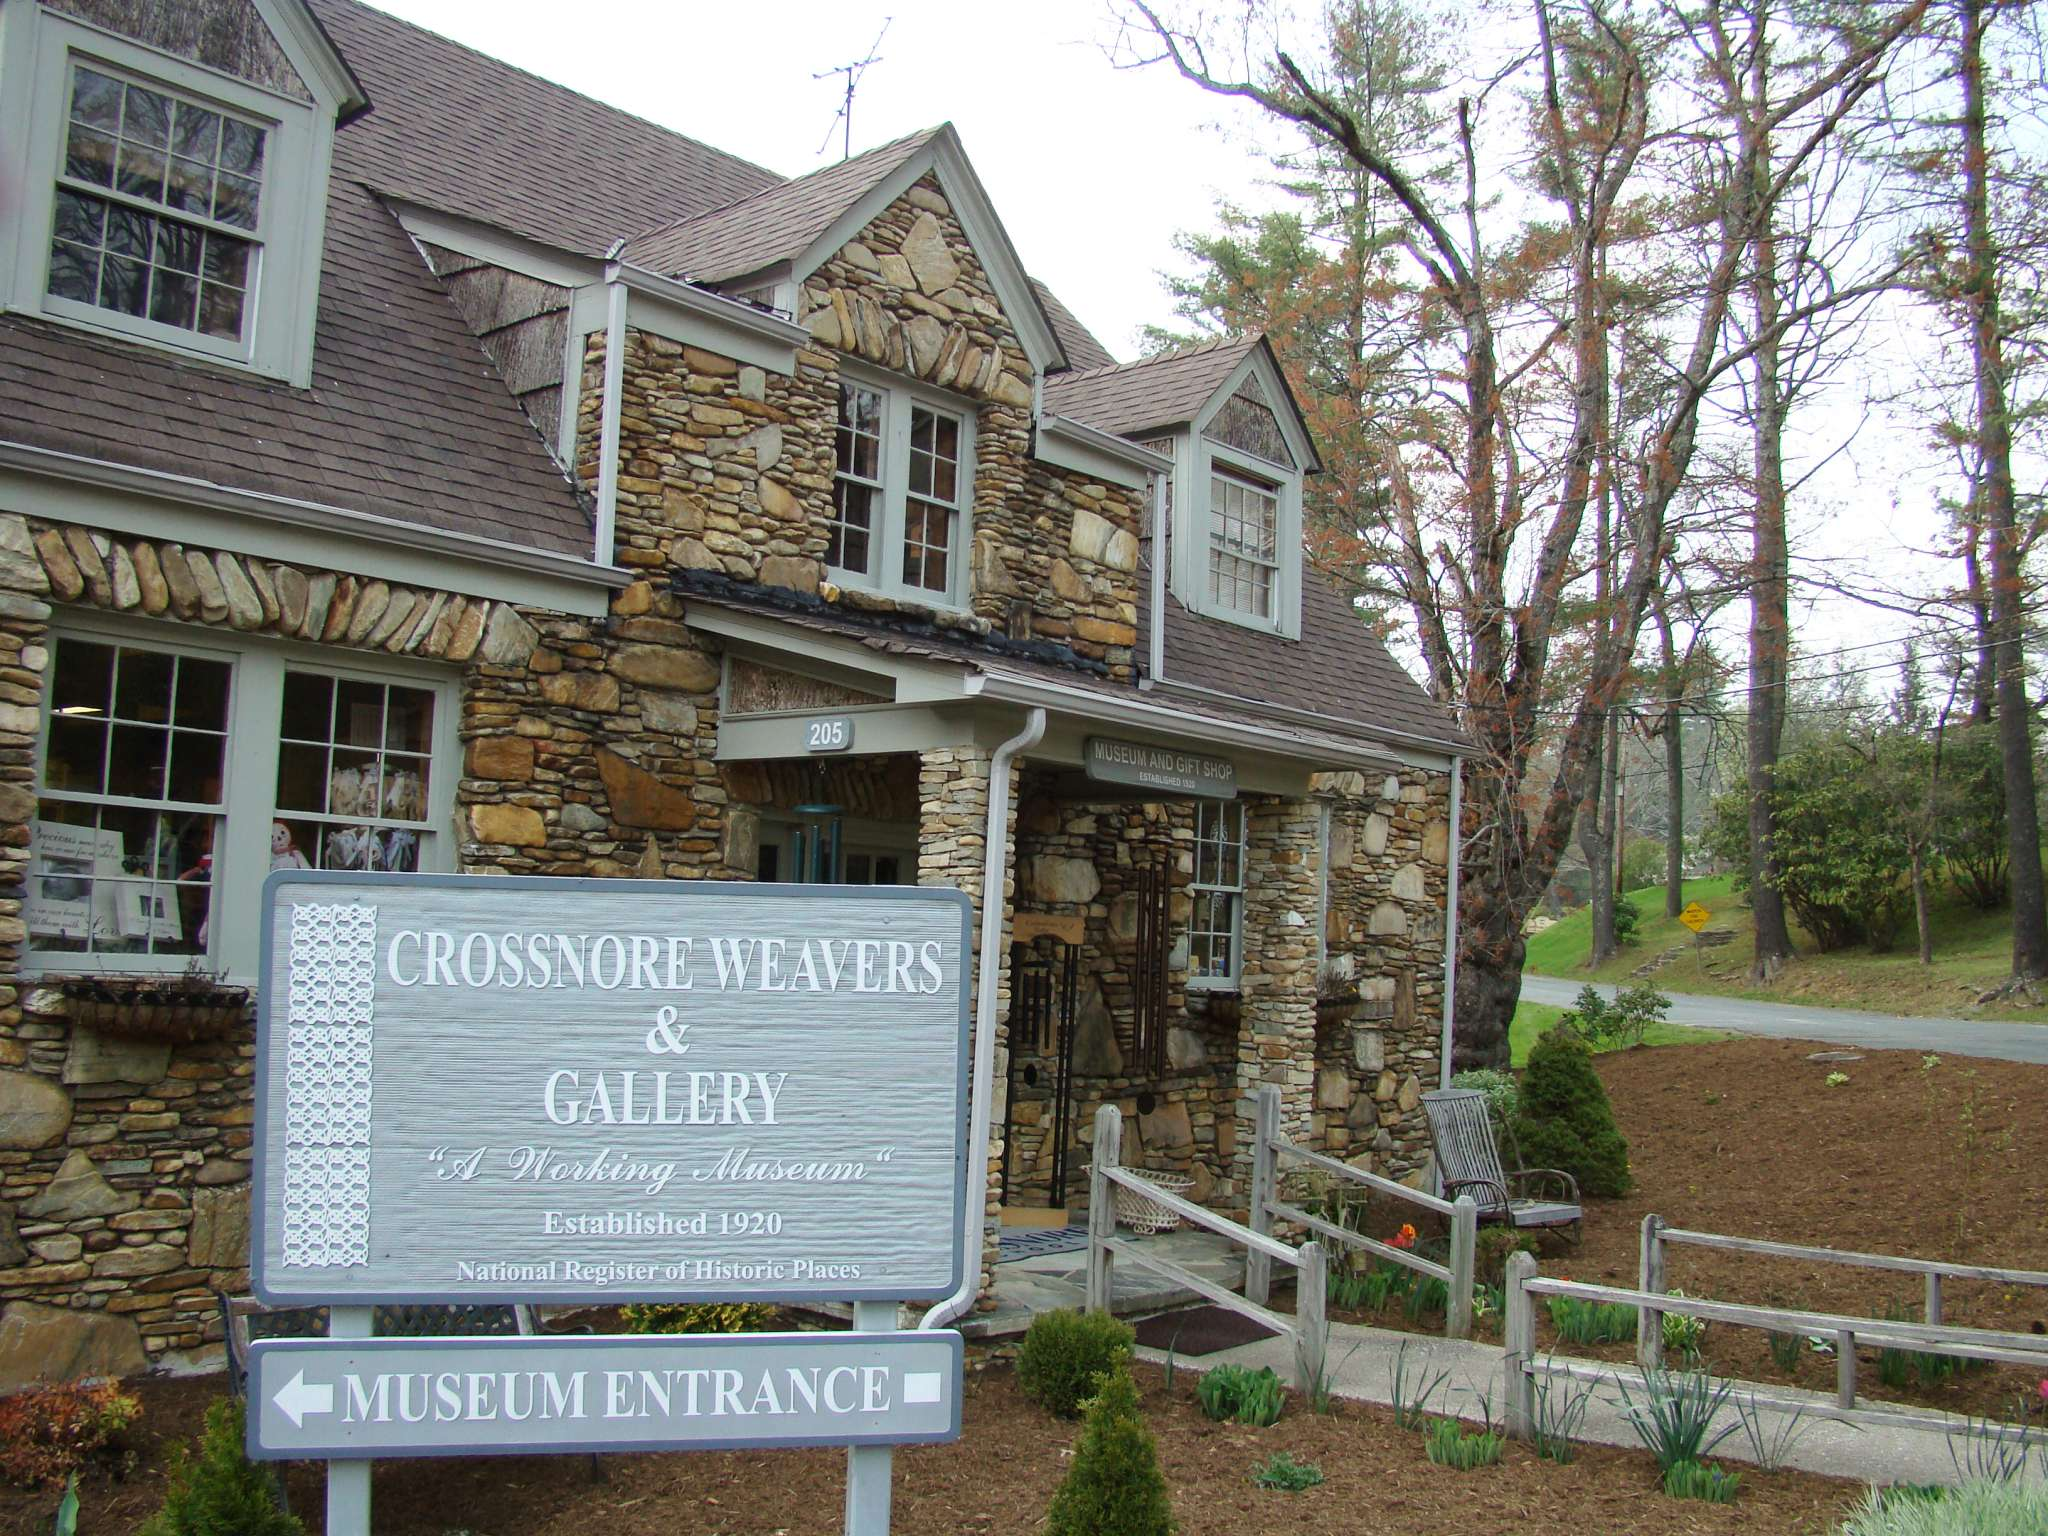 Crossnore Weavers Gallery & Museum